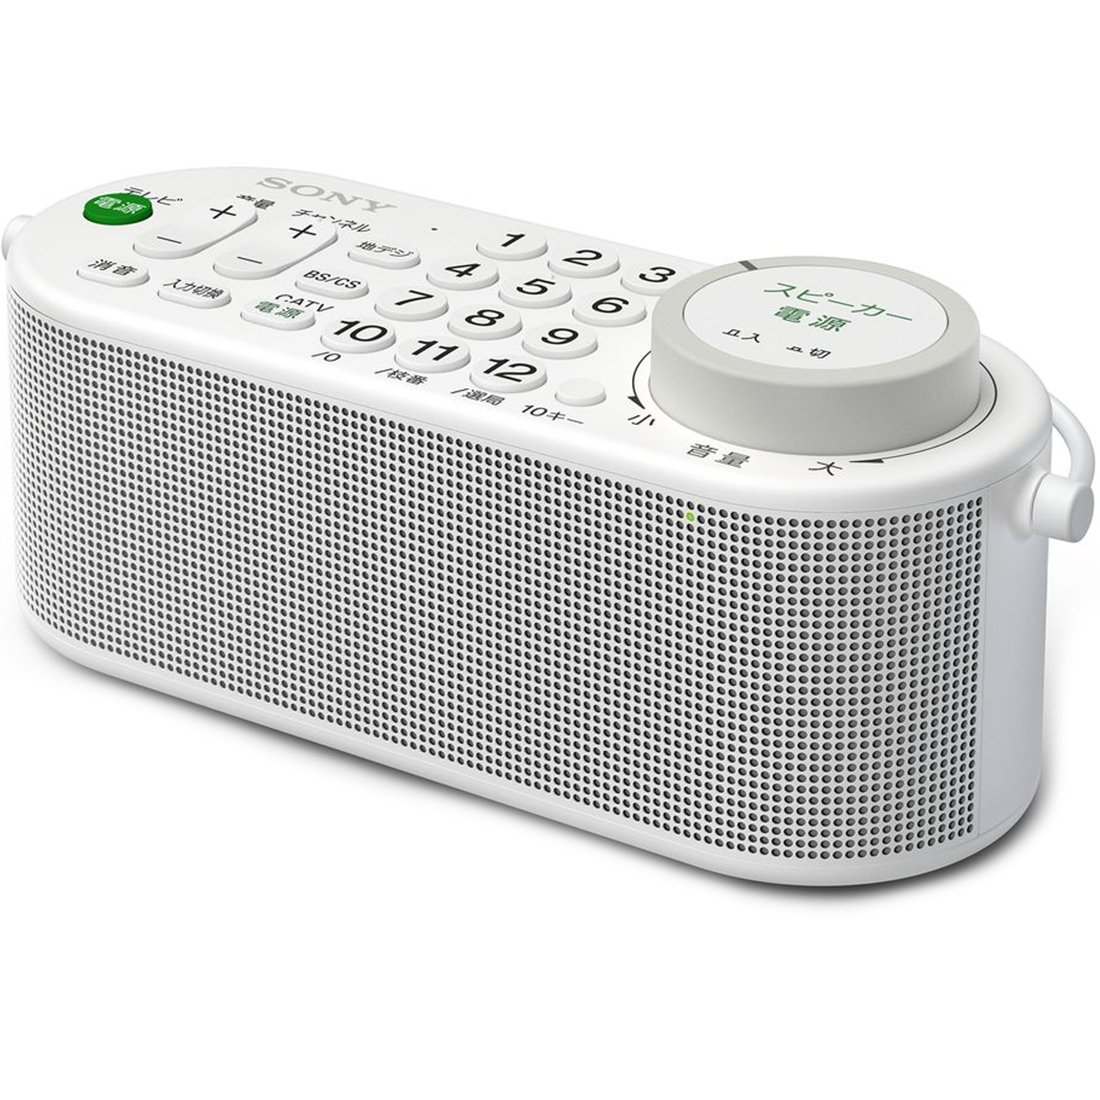 handy TV speakers (with TV remote control function) wireless-enabled SRS-LSR100 by Sony